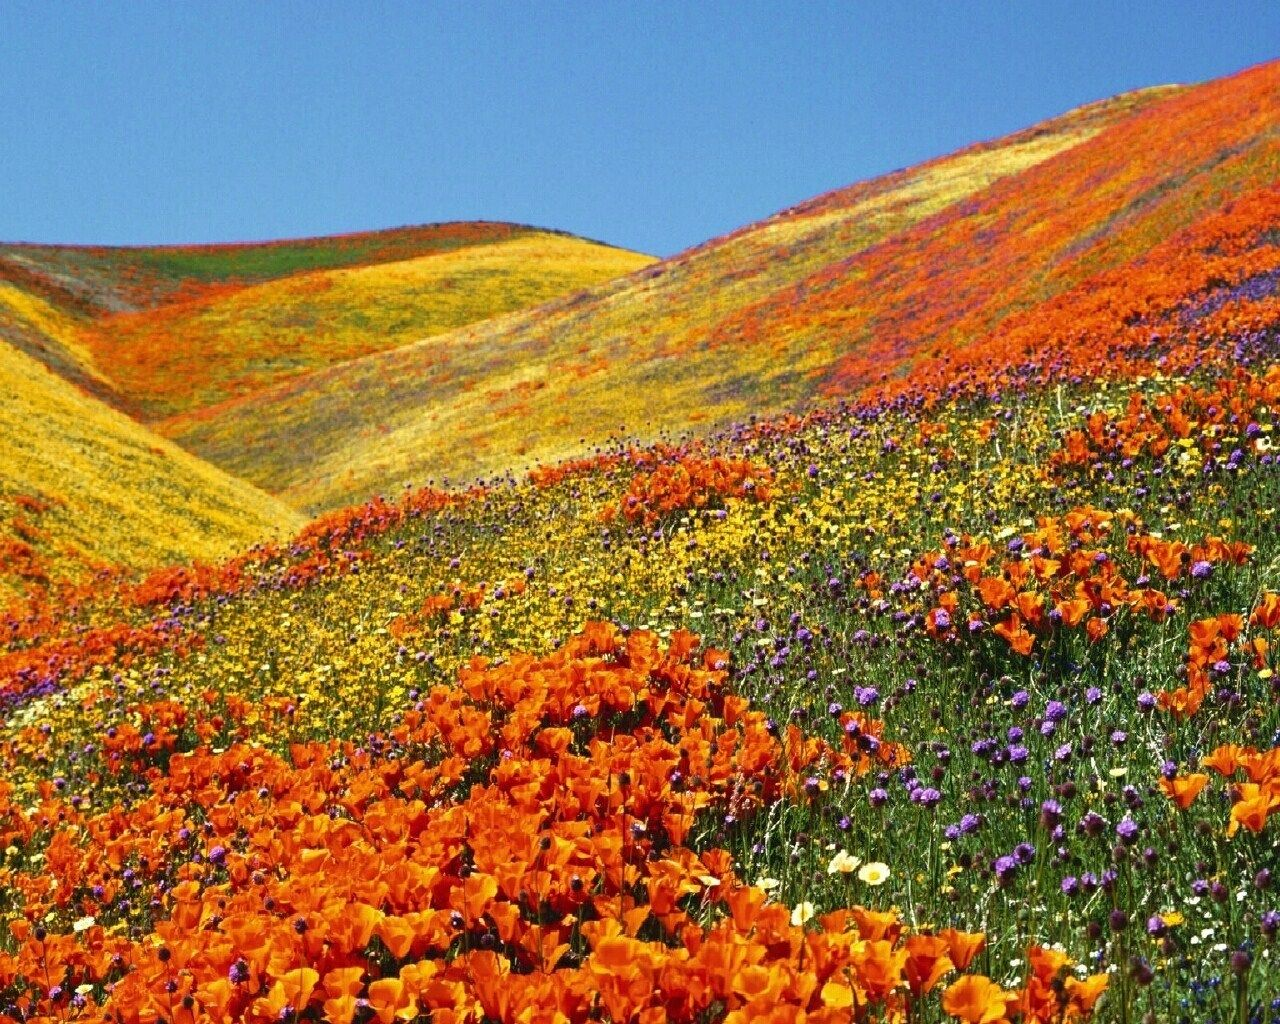 California poppies official state flower of california antelope california poppies official state flower of california antelope valley california poppy reserve at peak mightylinksfo Gallery